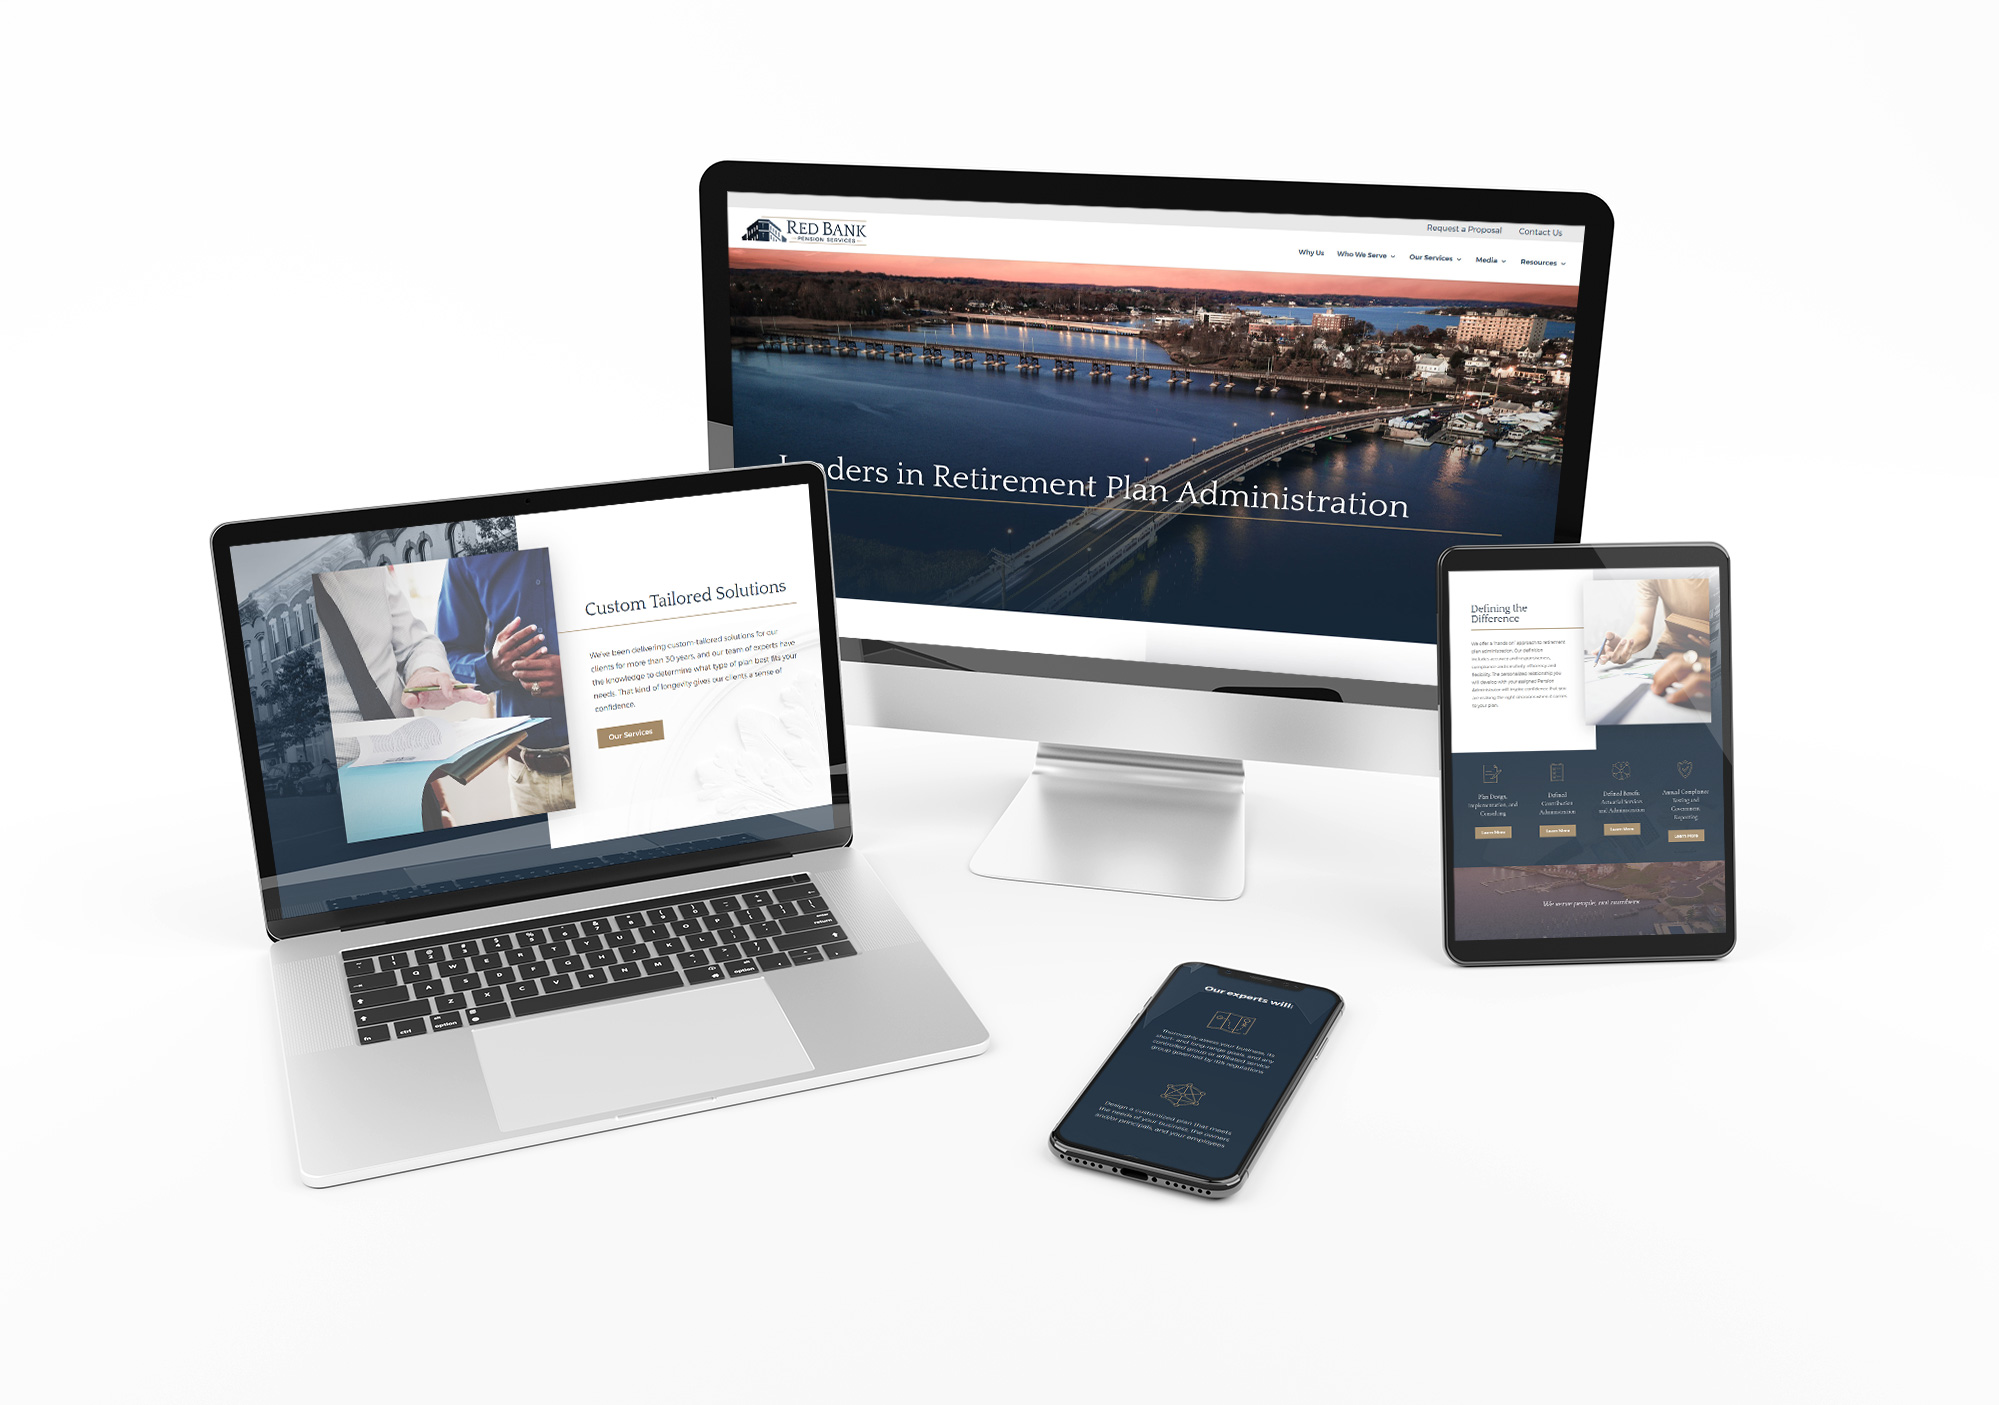 Red Bank Pension Services website displayed across 4 devices of different sizes